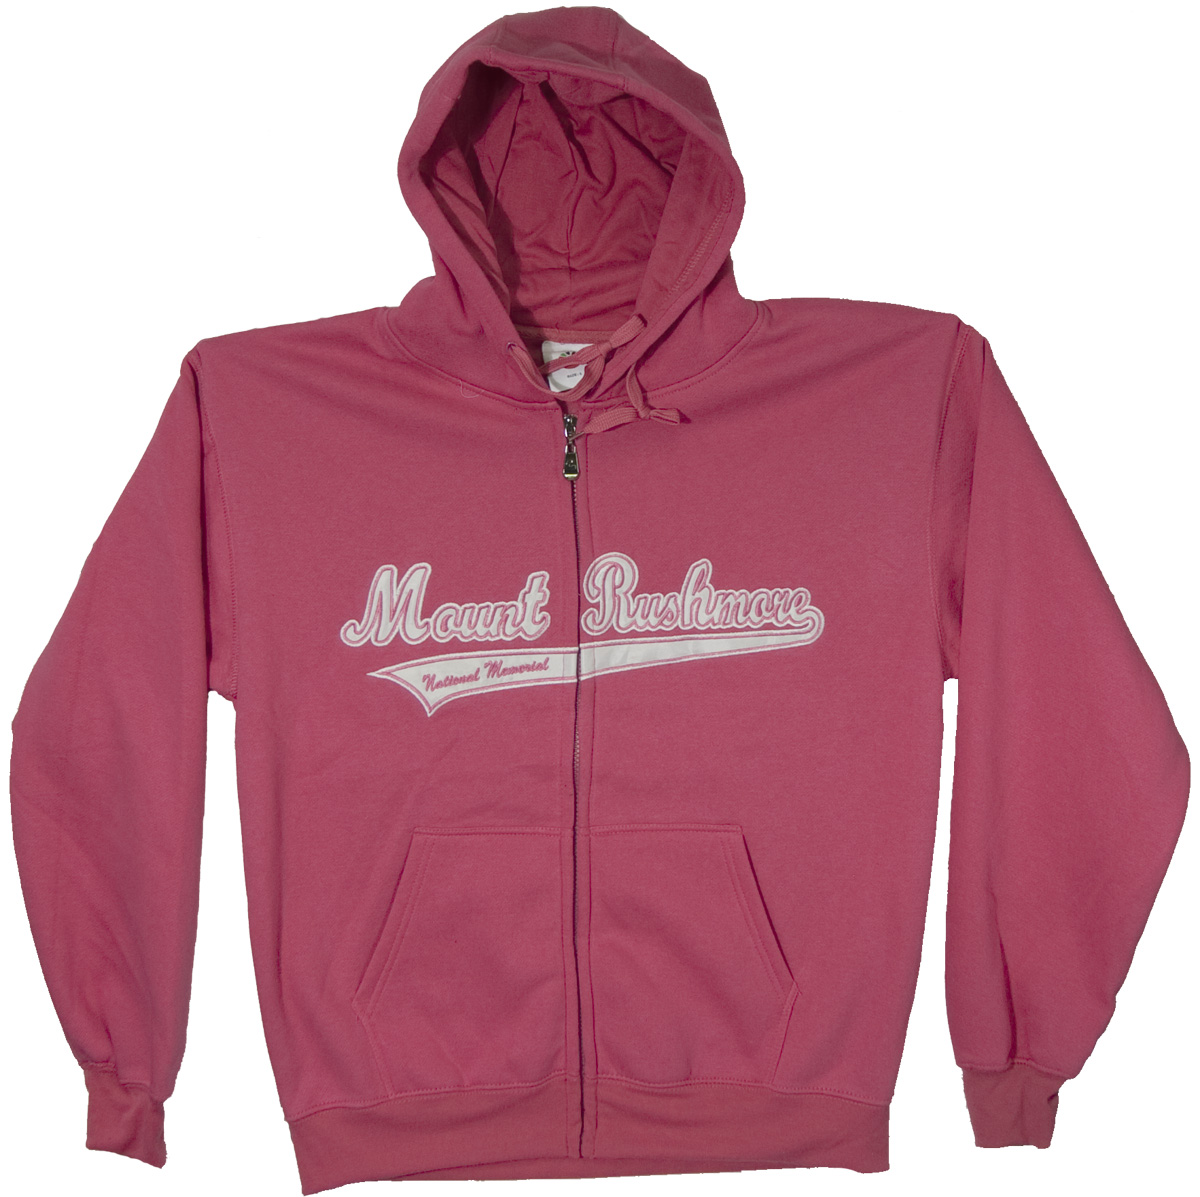 (2X) MOUNT RUSHMORE HOT PINK APPLIQUE ZIP HOODY